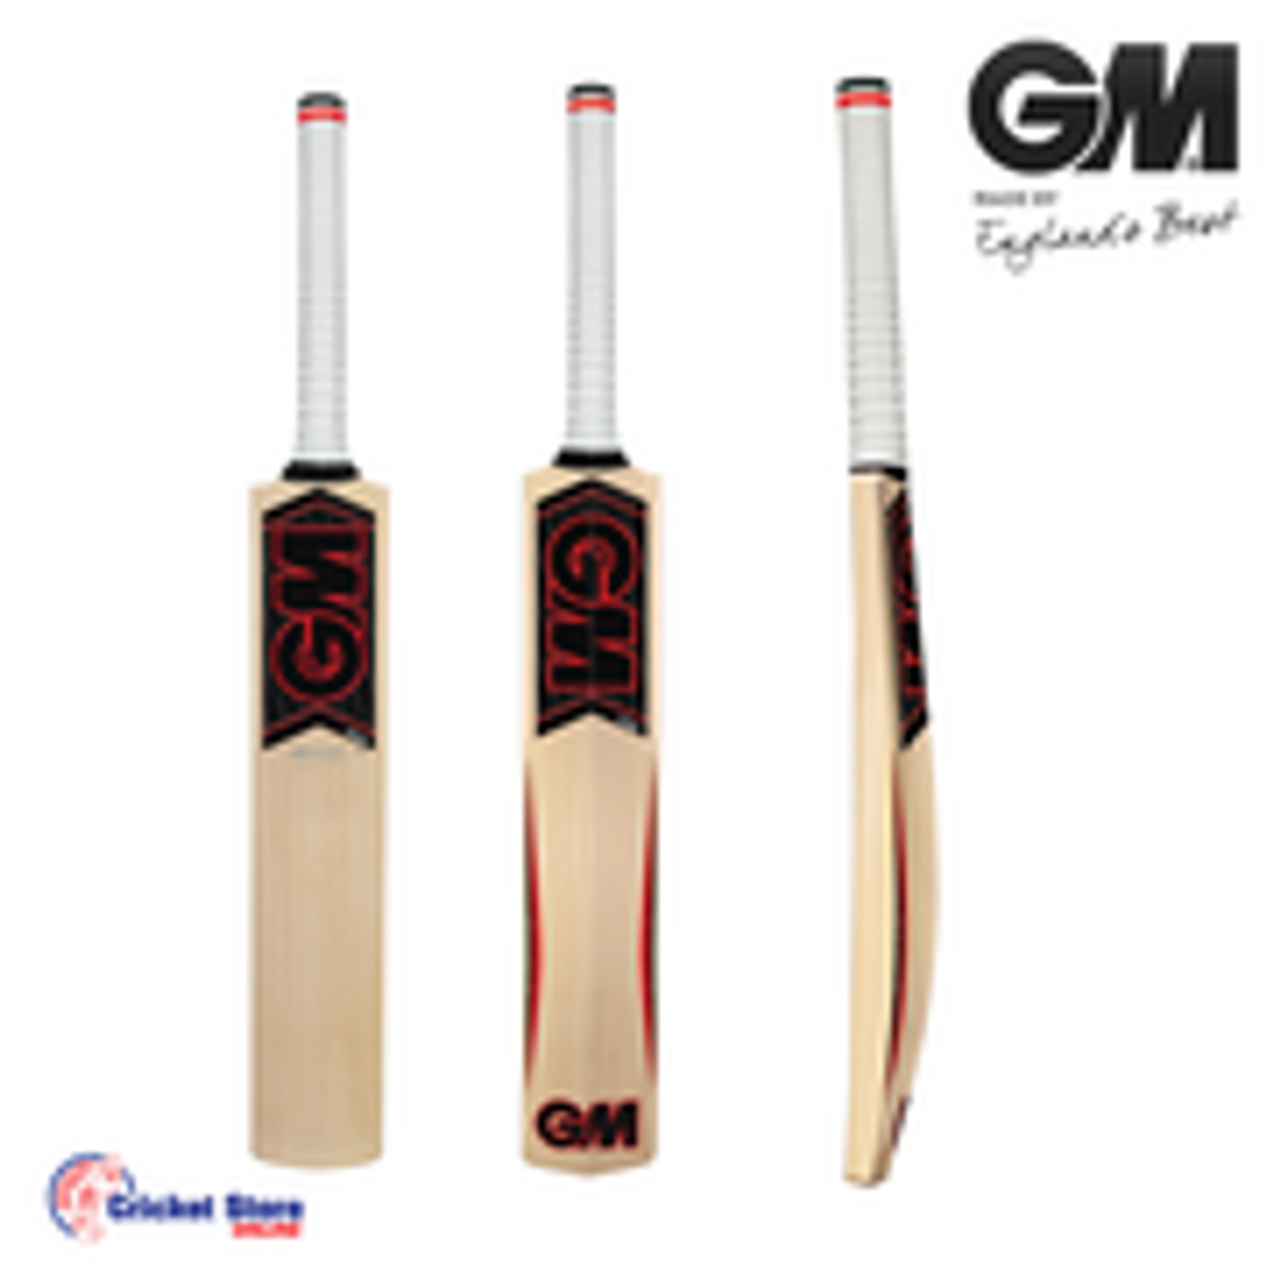 GM Mana Cricket Bats